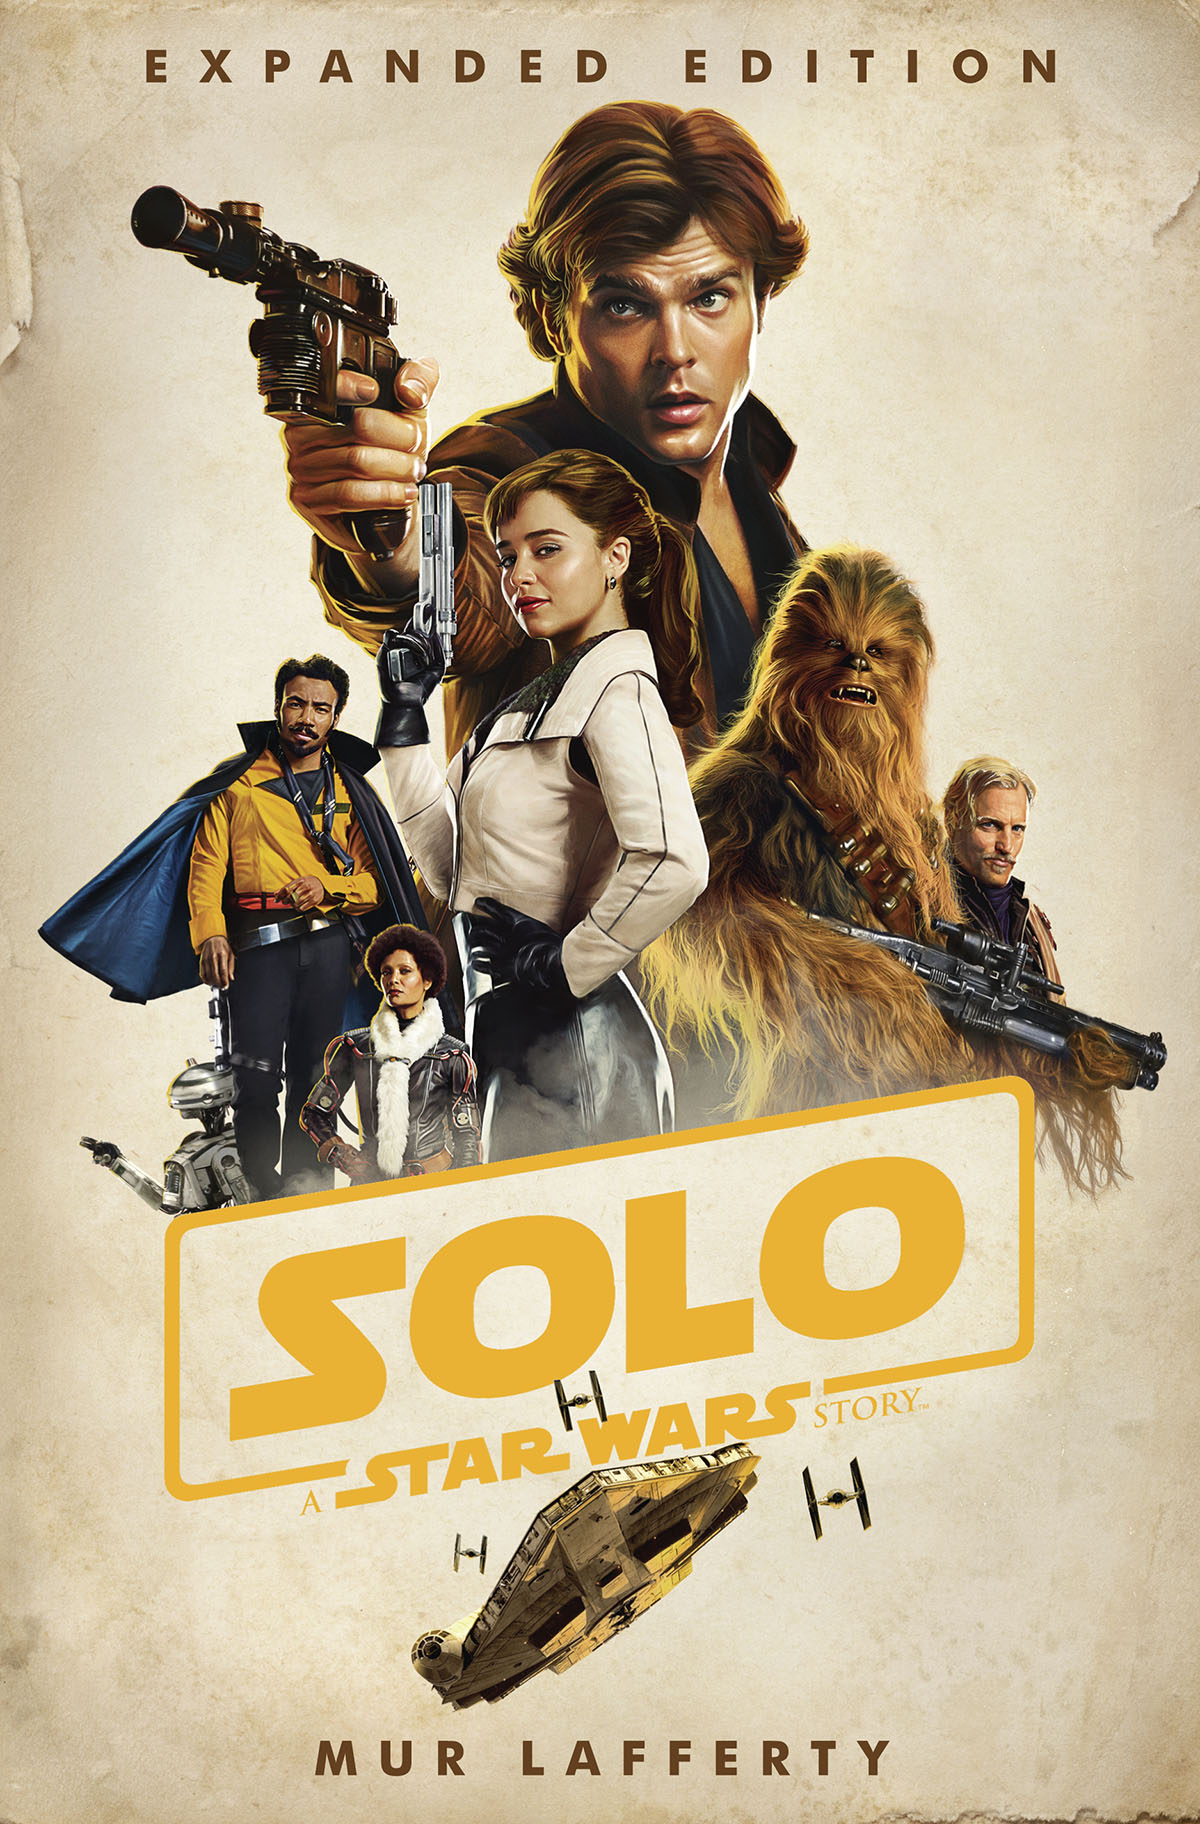 'Solo: A Star Wars Story: Expanded Edition' novelization review: So good it makes me want to watch the movie again right now